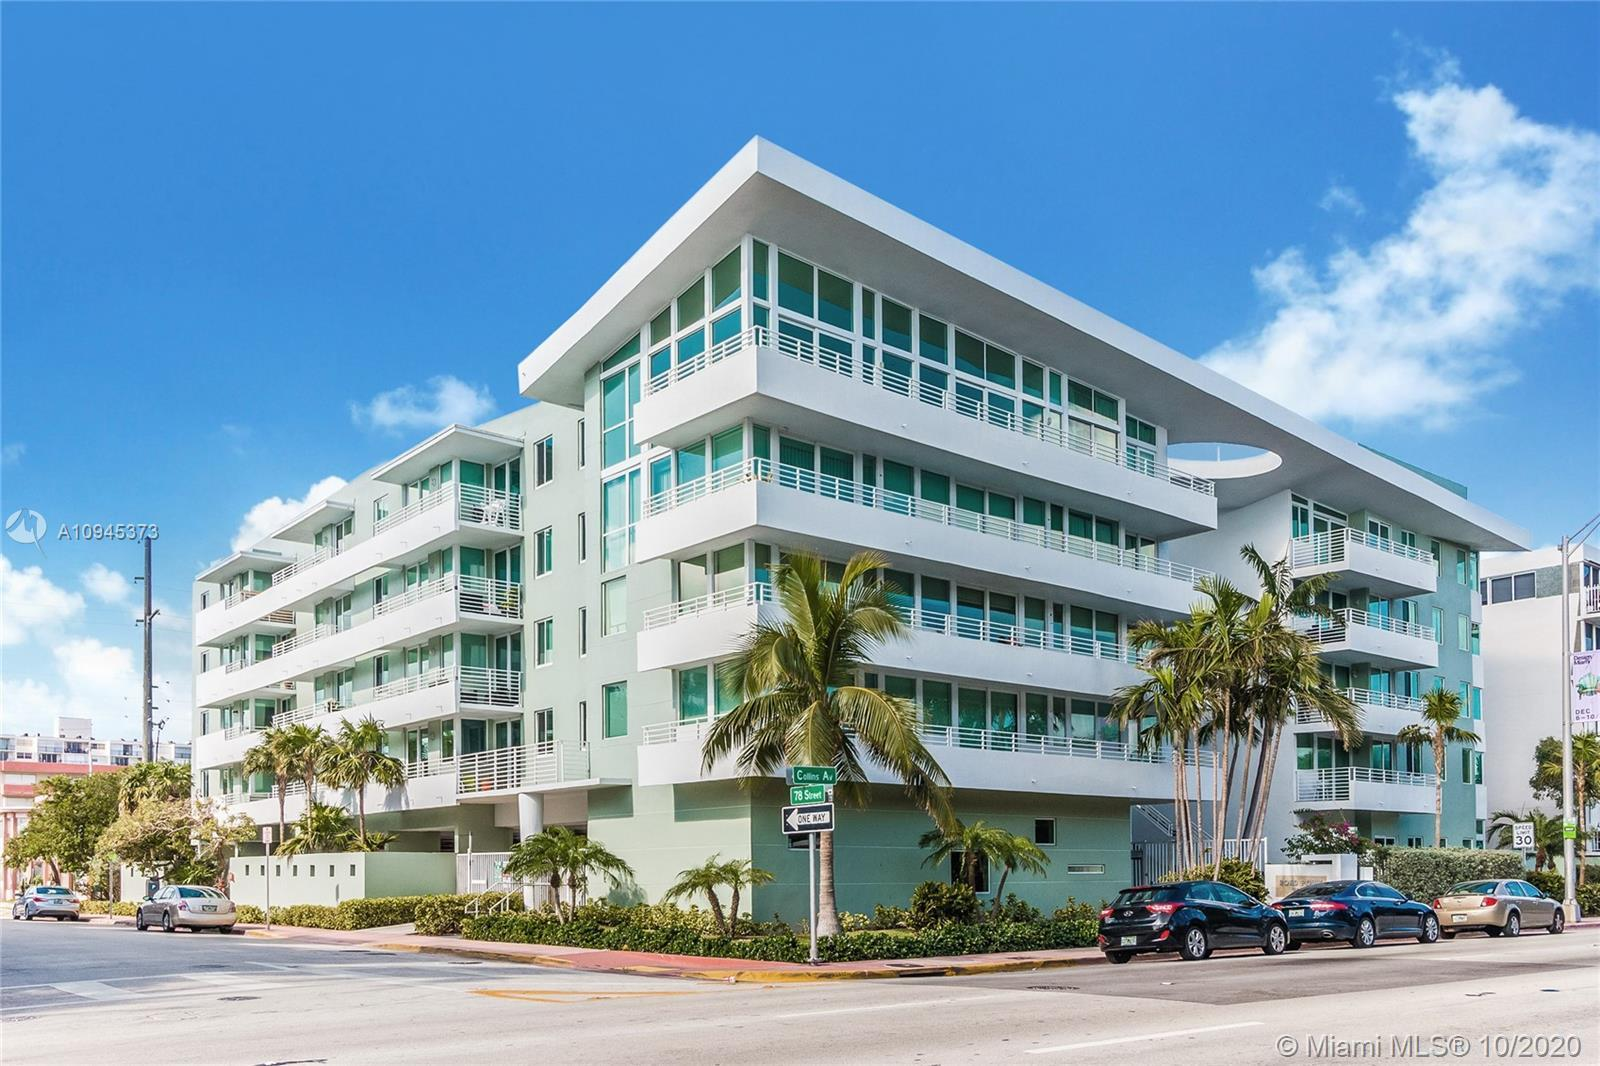 Check out this  great beach condo on Collins Avenue, conveniently located within steps to the beach!